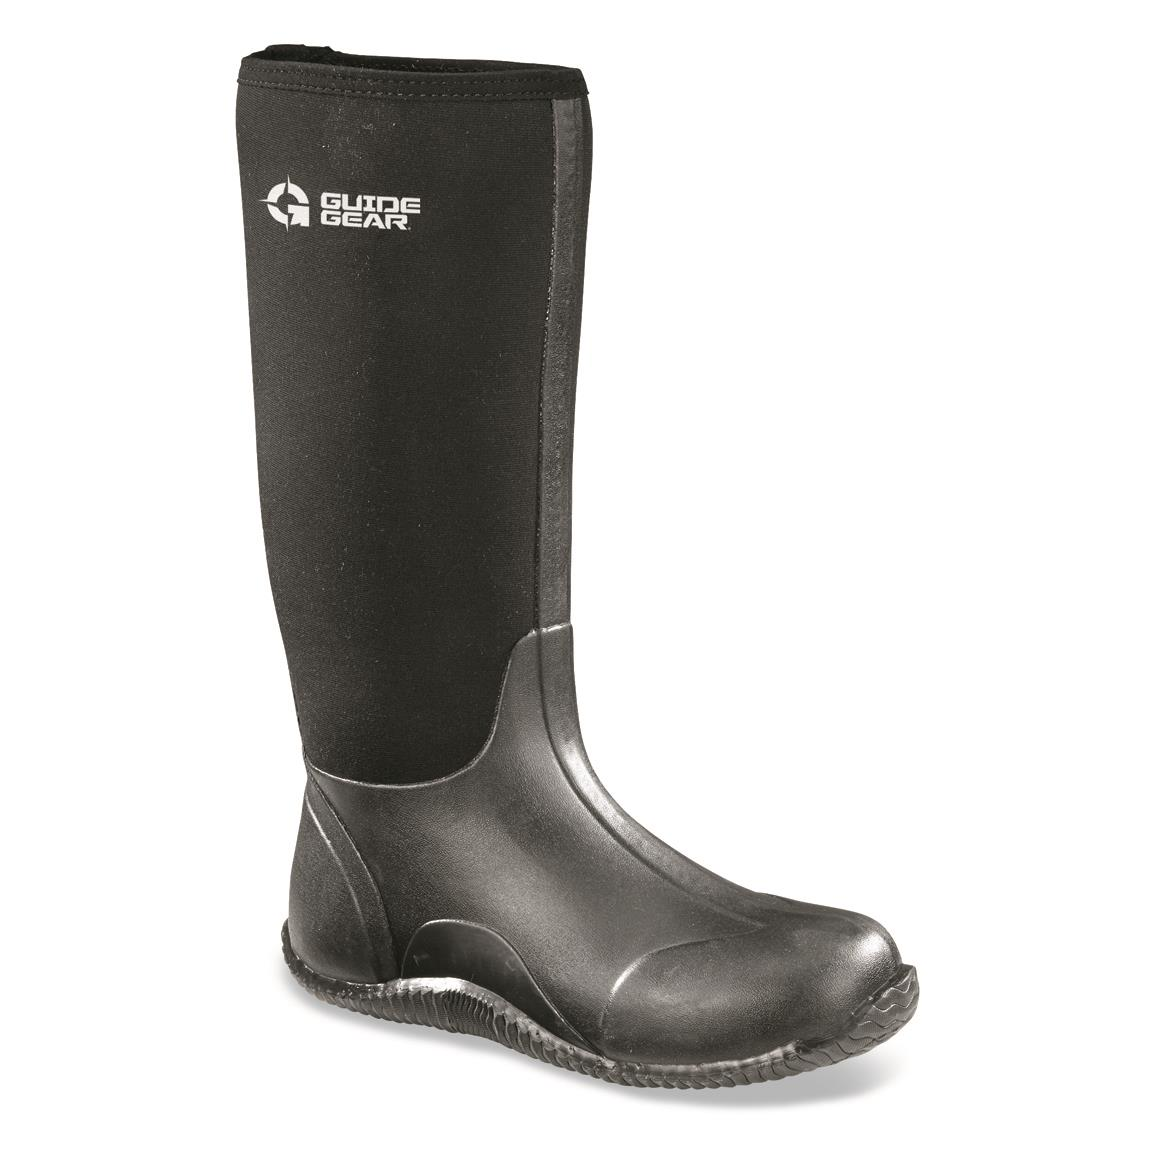 Guide Gear Women's High Bogger Rubber Boots, Black